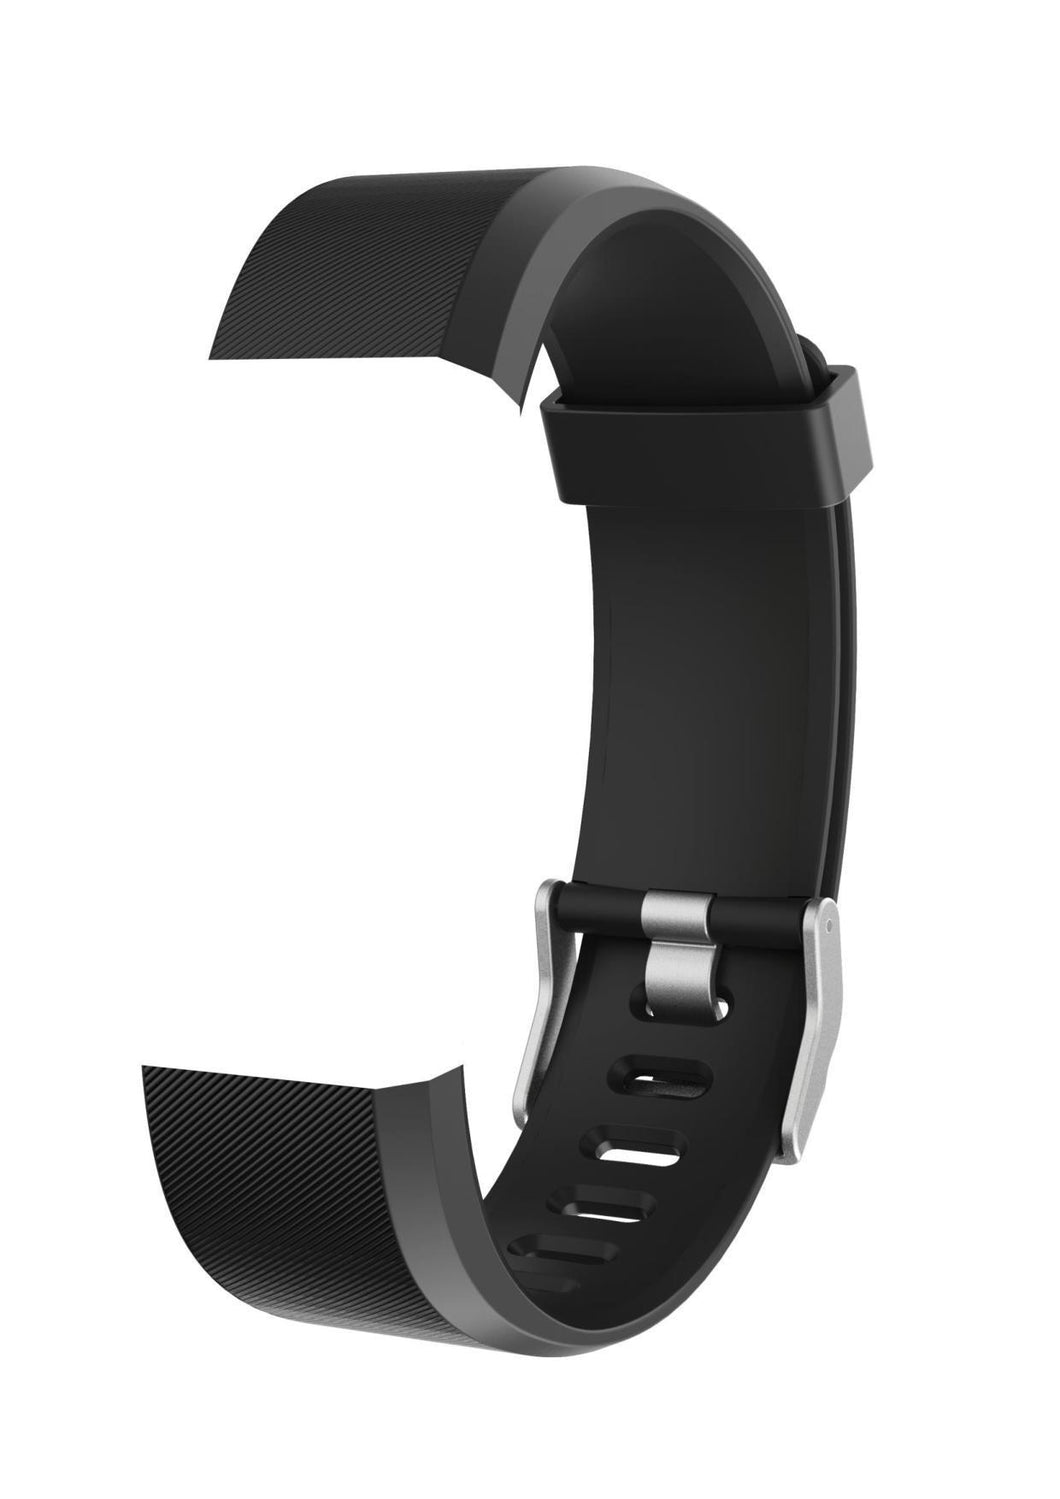 Bands - Tracker Max - Interchangeable Band - Black Band For CAC-110-M01